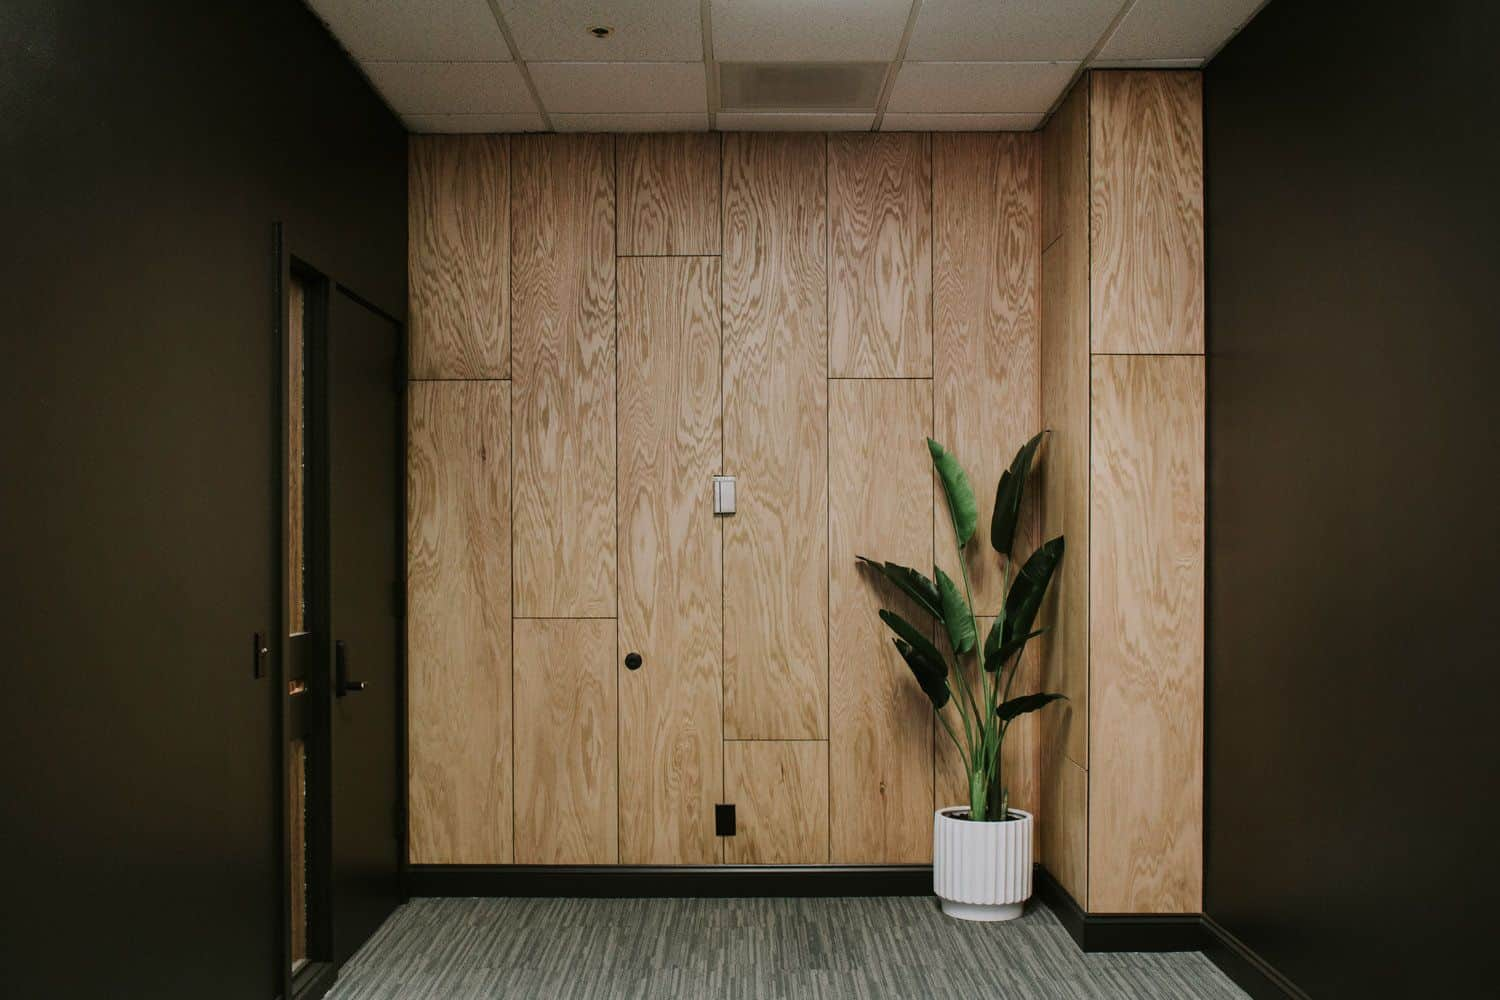 plywood wall design with grey single sofa and a green plant